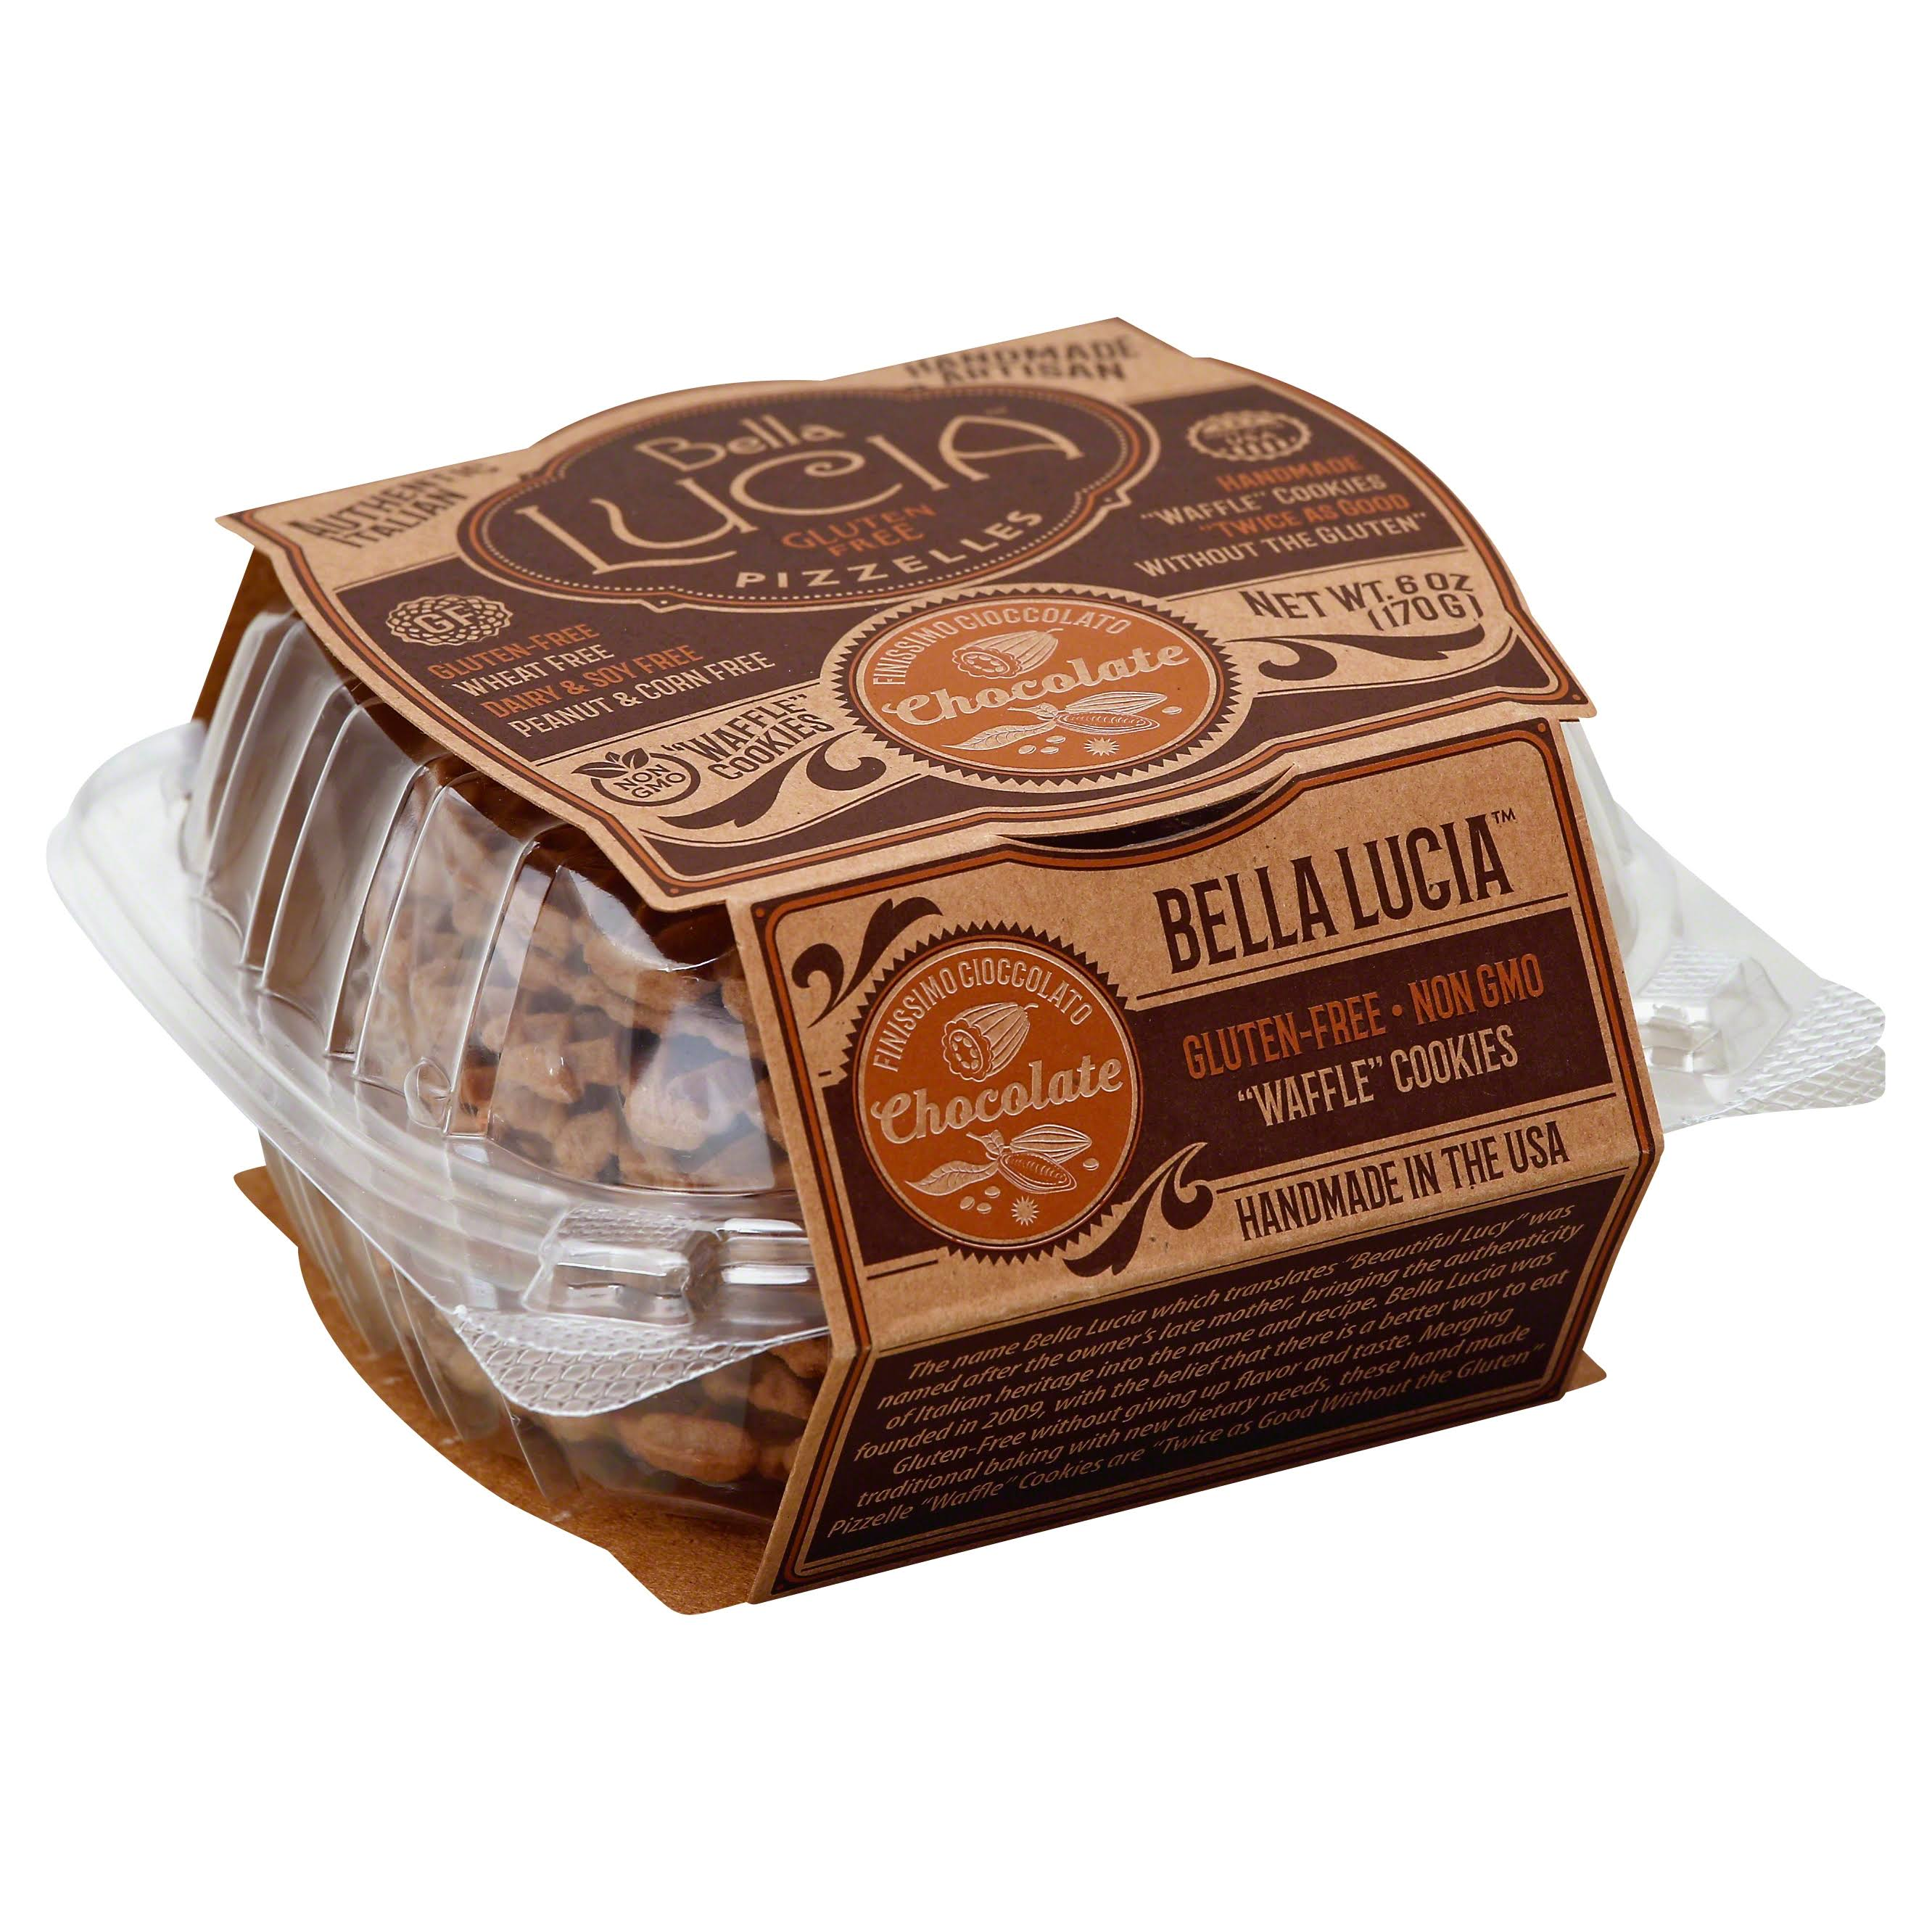 Bella Lucia Pizzelles, Gluten Free, Chocolate - 6 oz